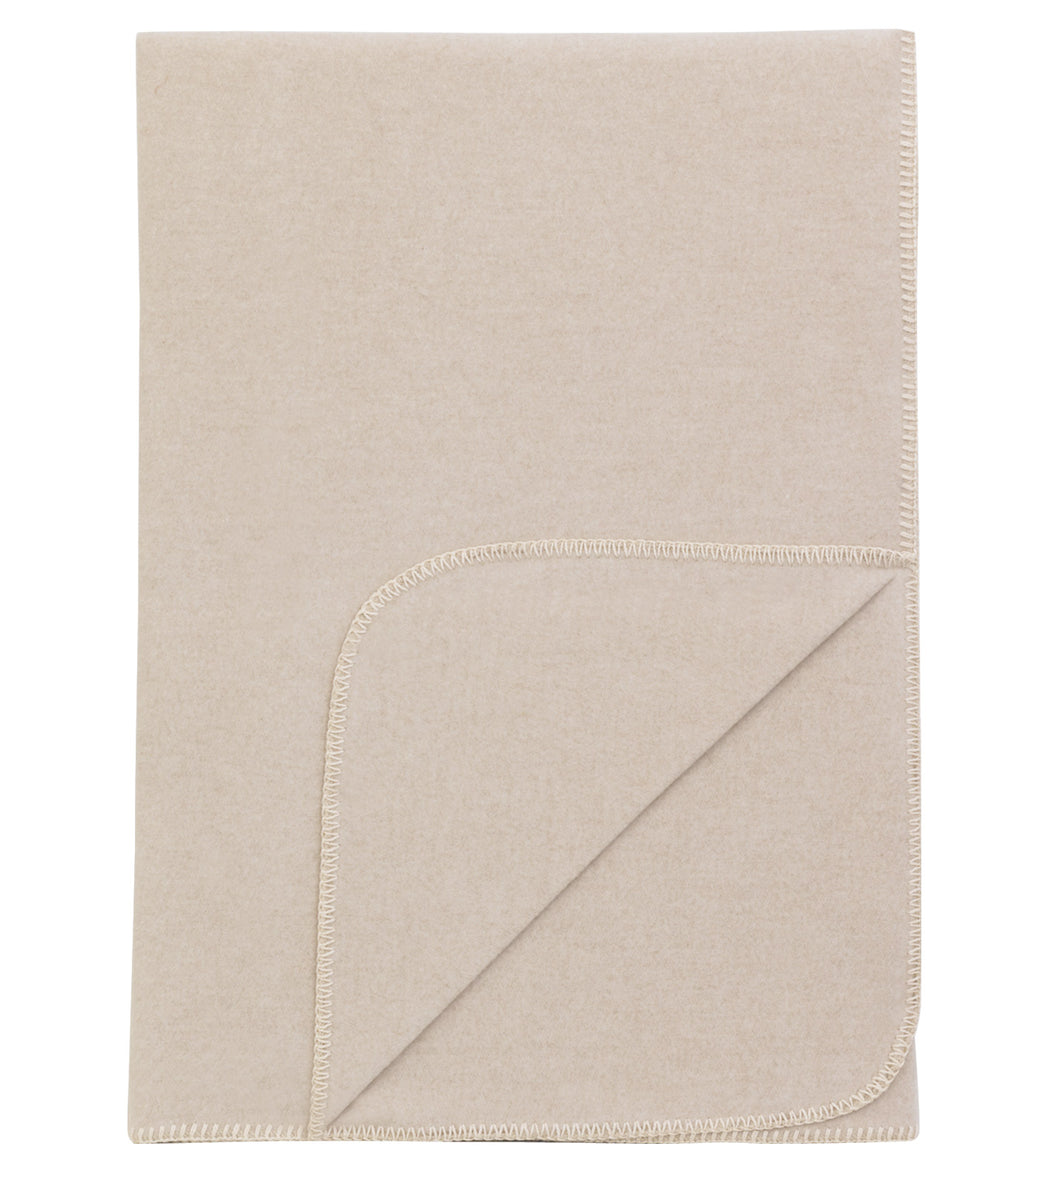 Neutral Solid Rustic 100% Cotton Throw With White Blanket Stitch